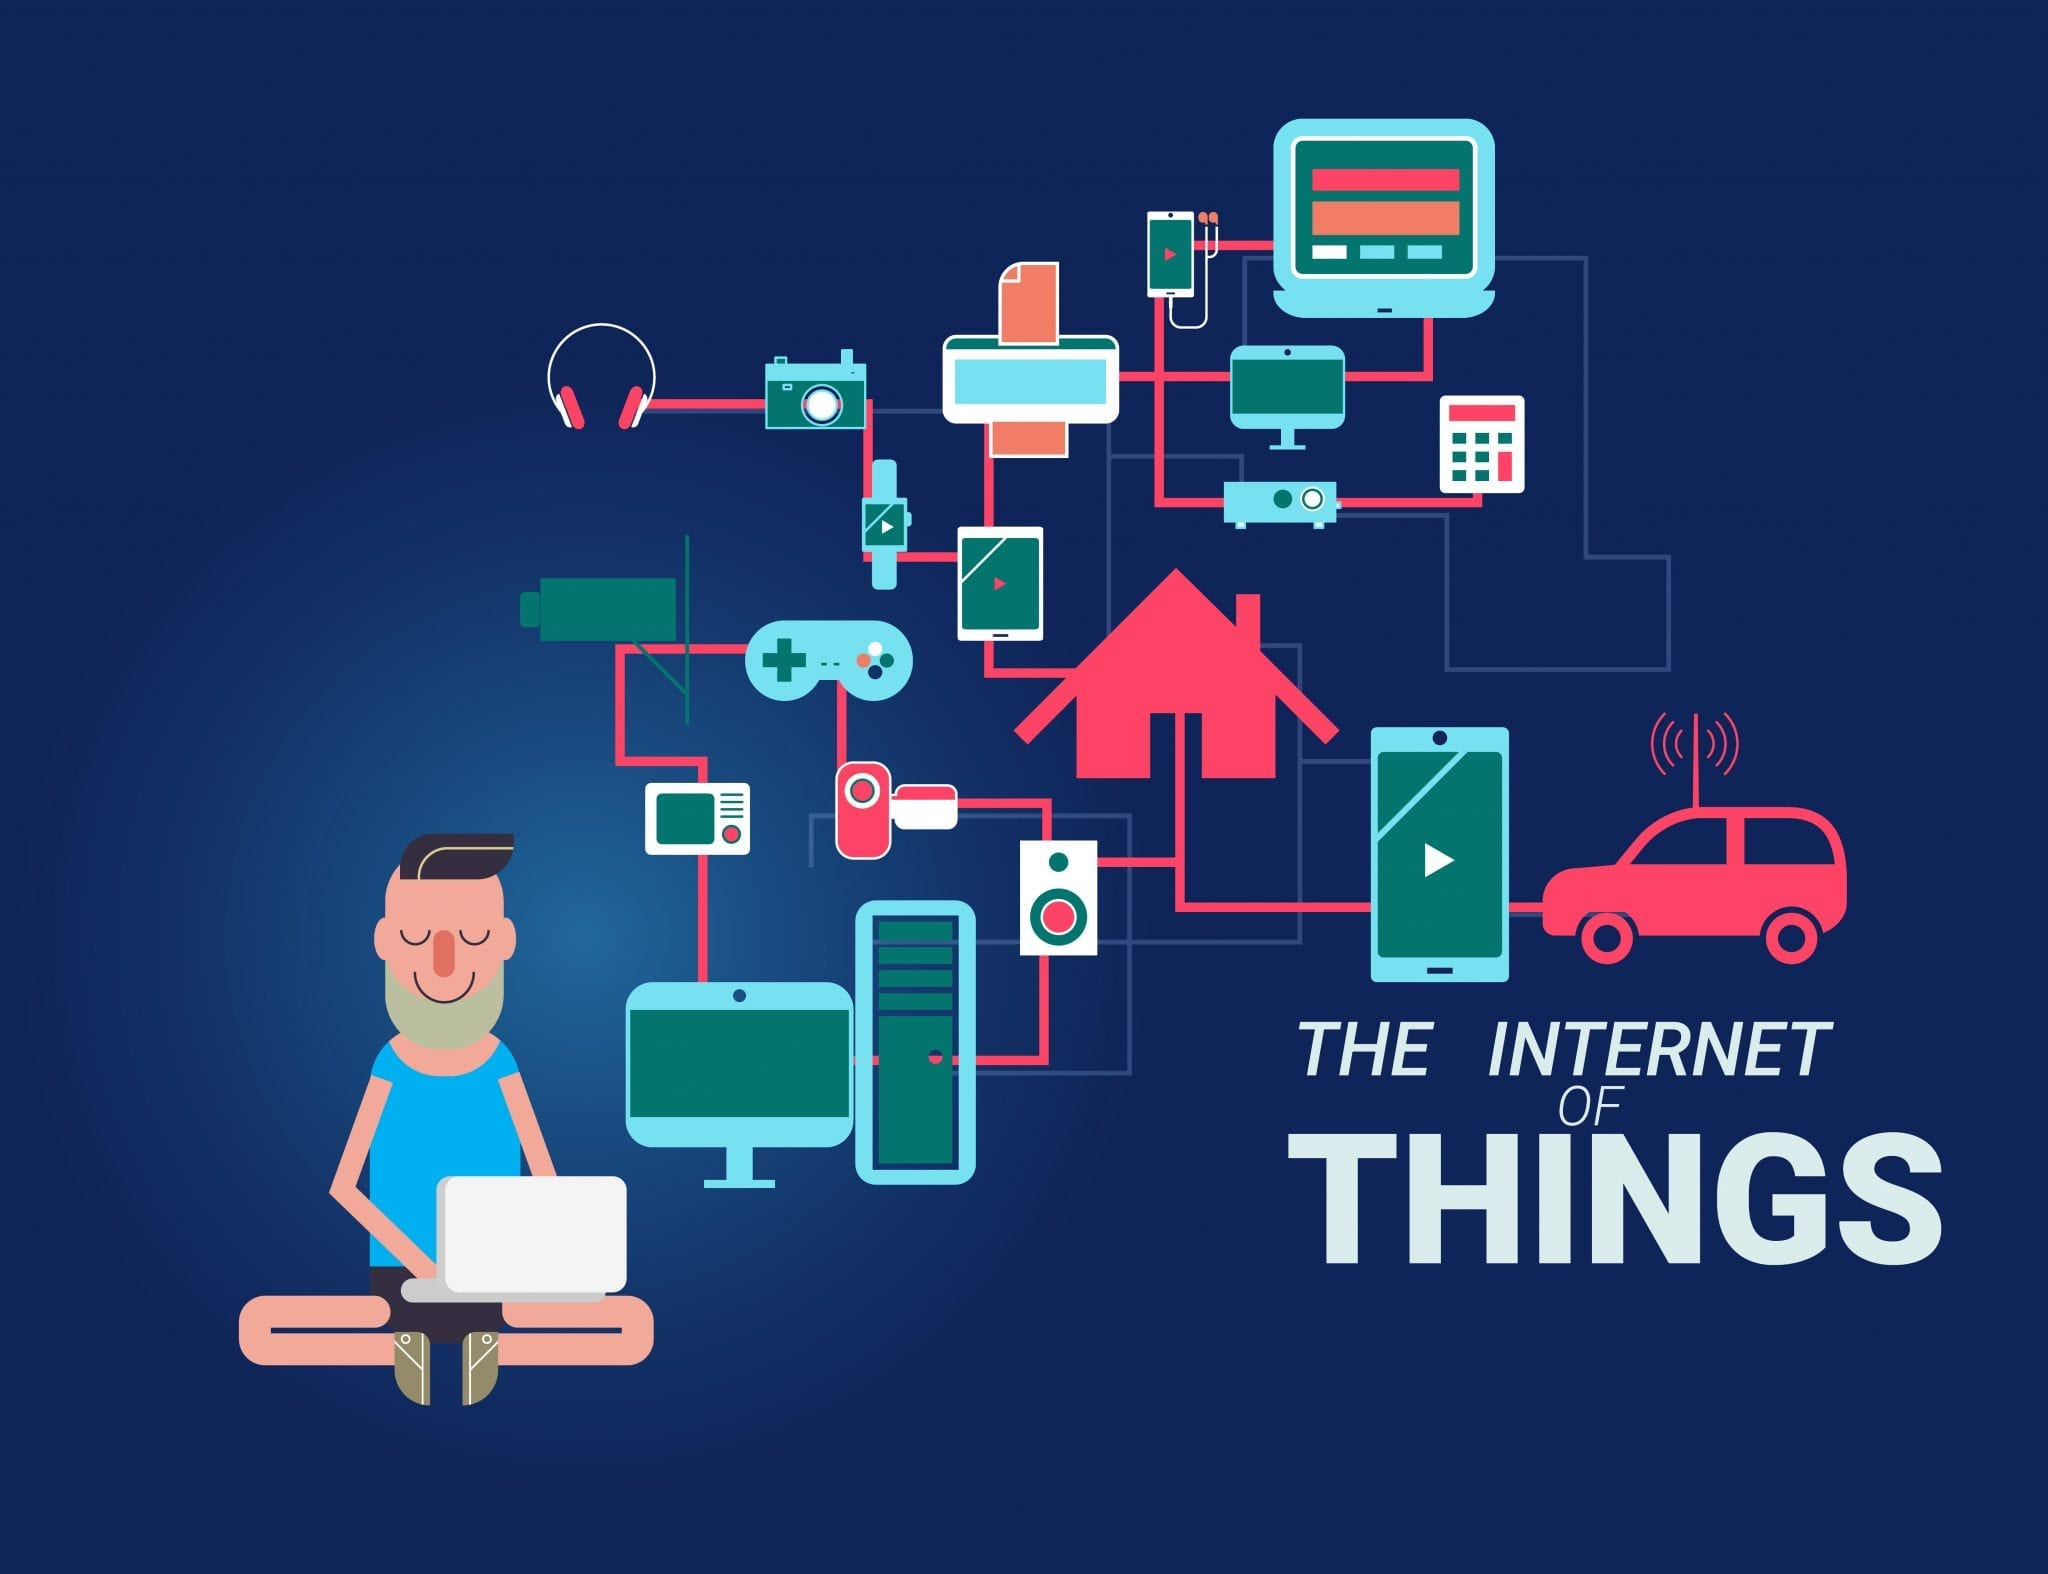 Internet of things illustrations